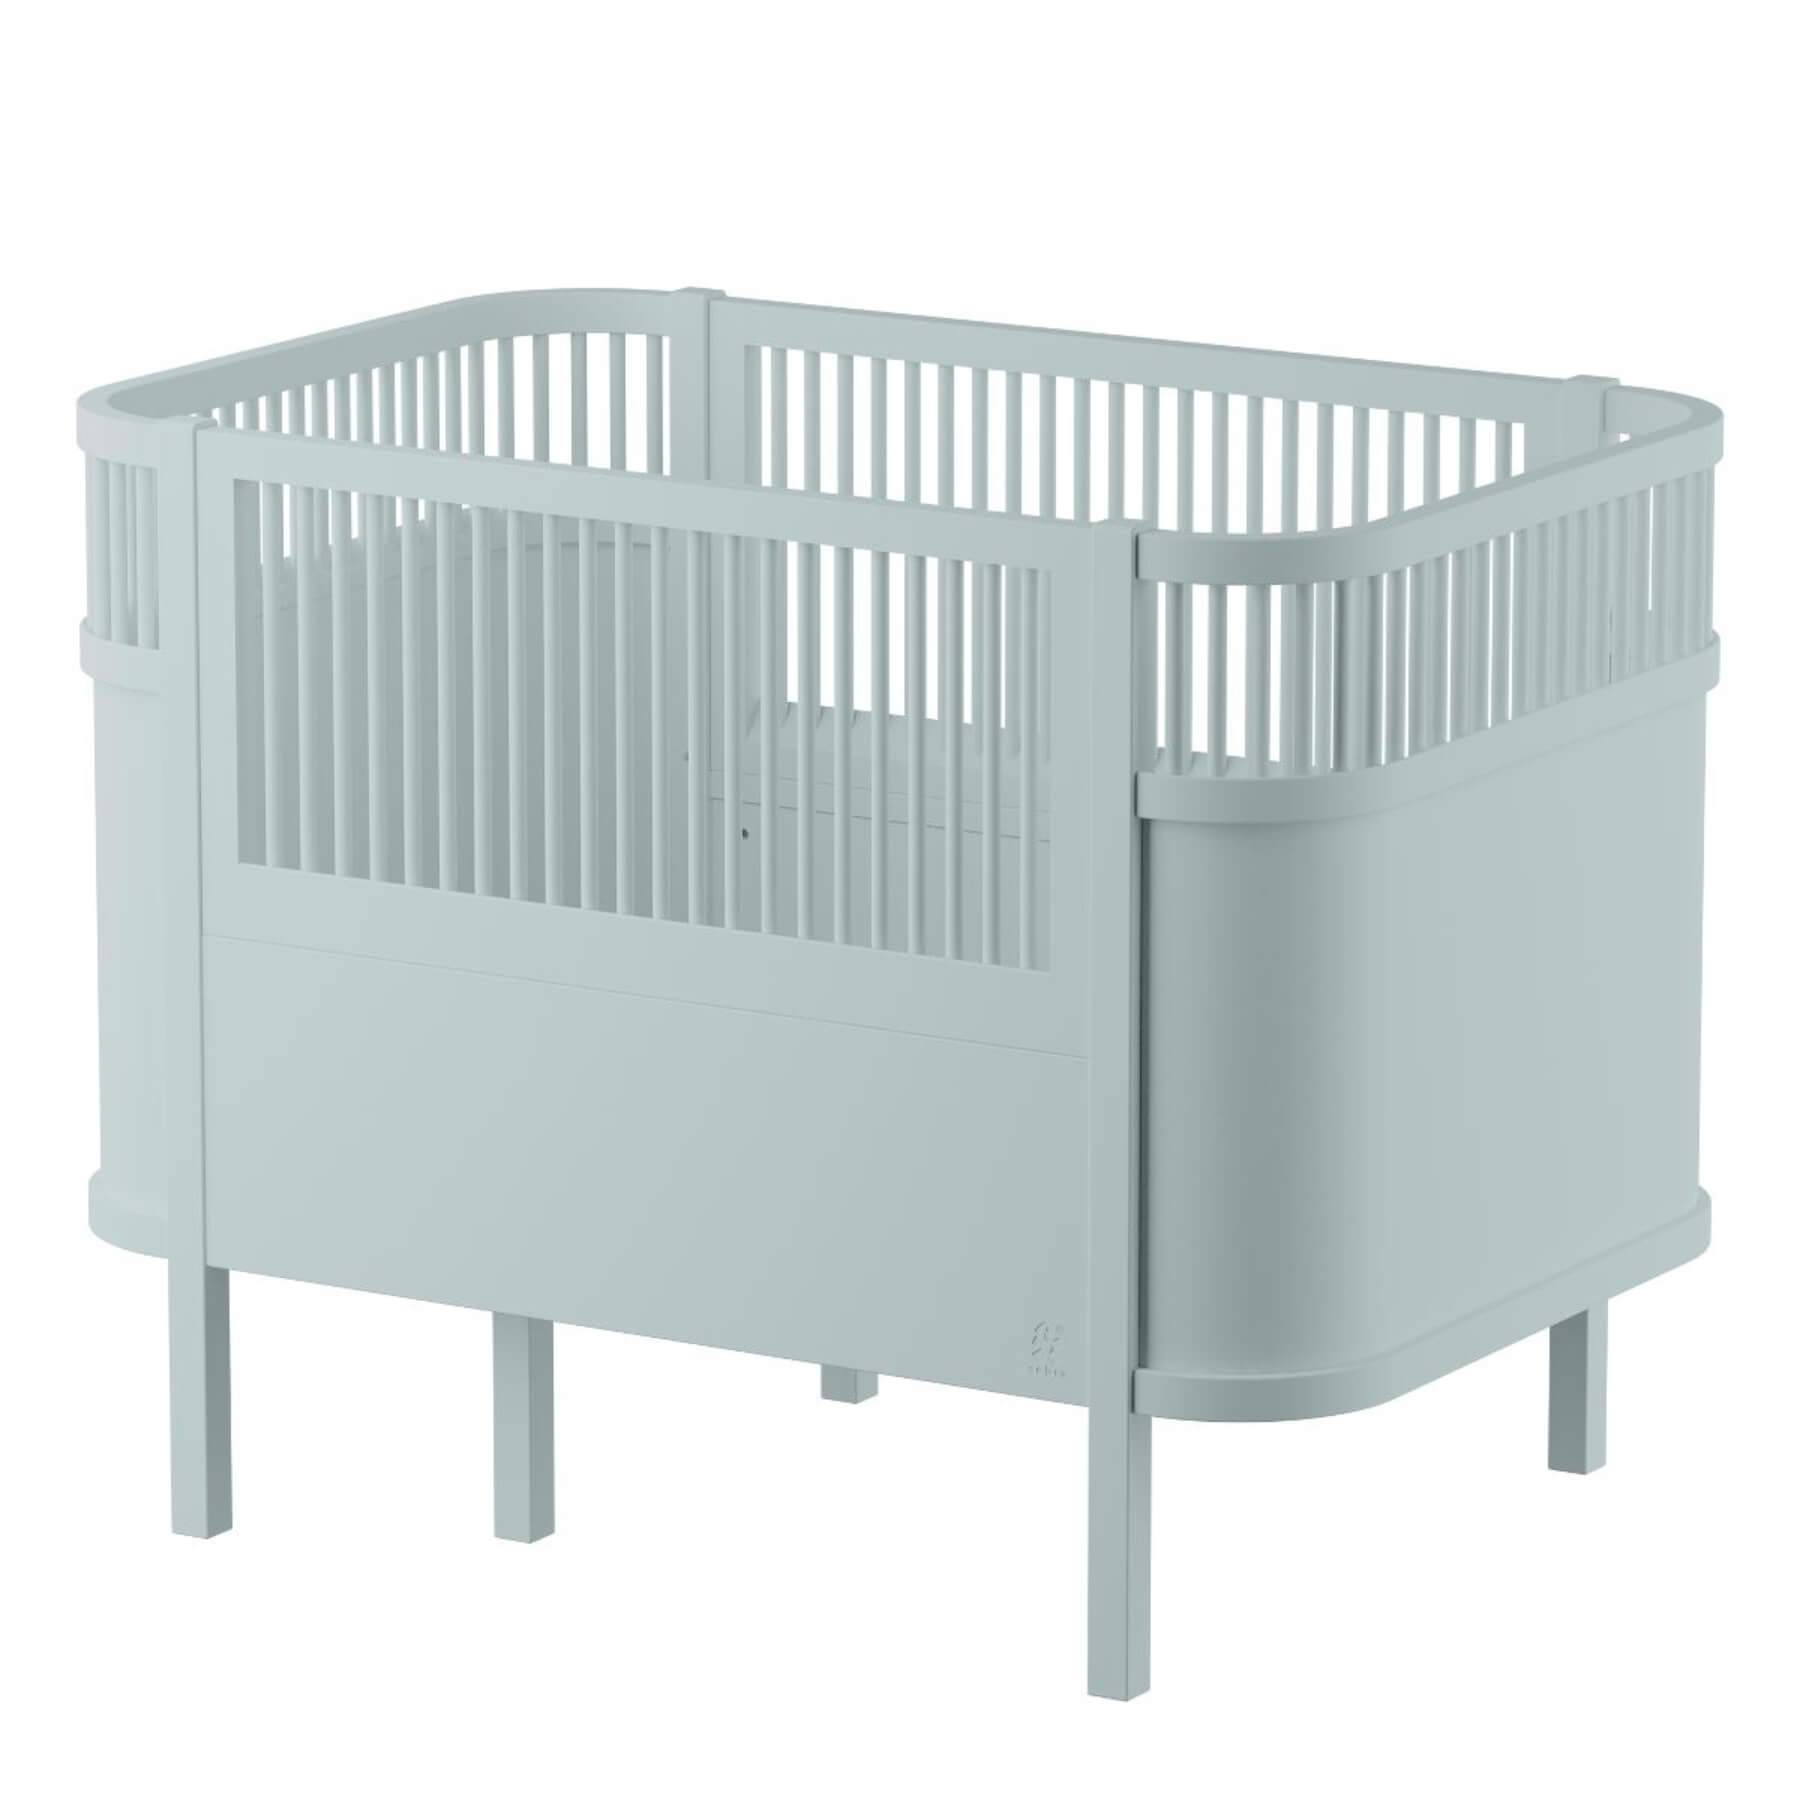 Sebra Baby & Junior Bed - Mist Green